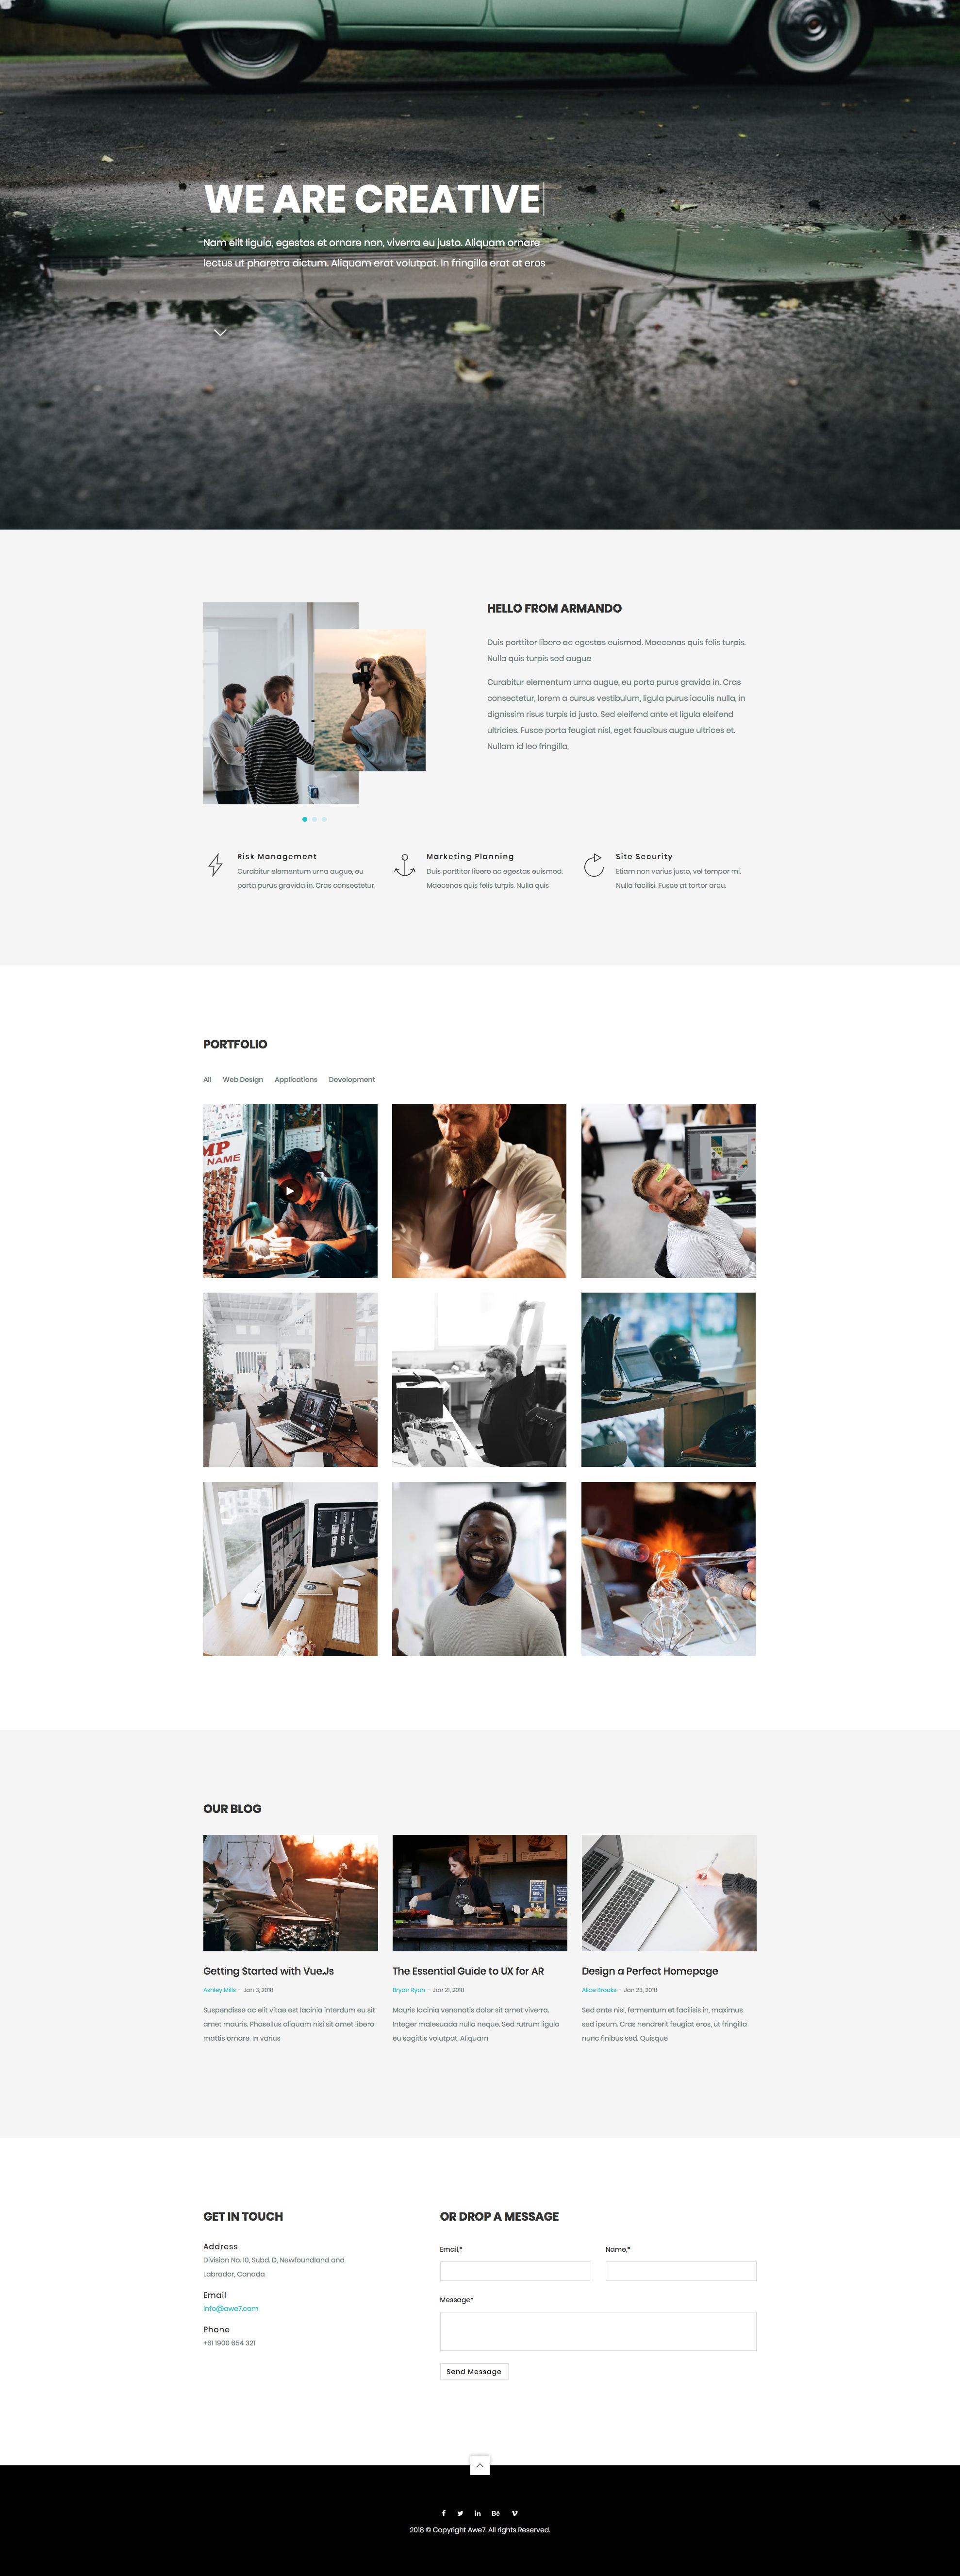 Armando is a modern and minimal free responsive HTML5 one page HTML5 Bootstrap website template. The perfect HTML5 template to showcase your work products and services. Armando free HTML template is fully responsive, retina ready and comes with the popular Bootstrap CSS Grid System.